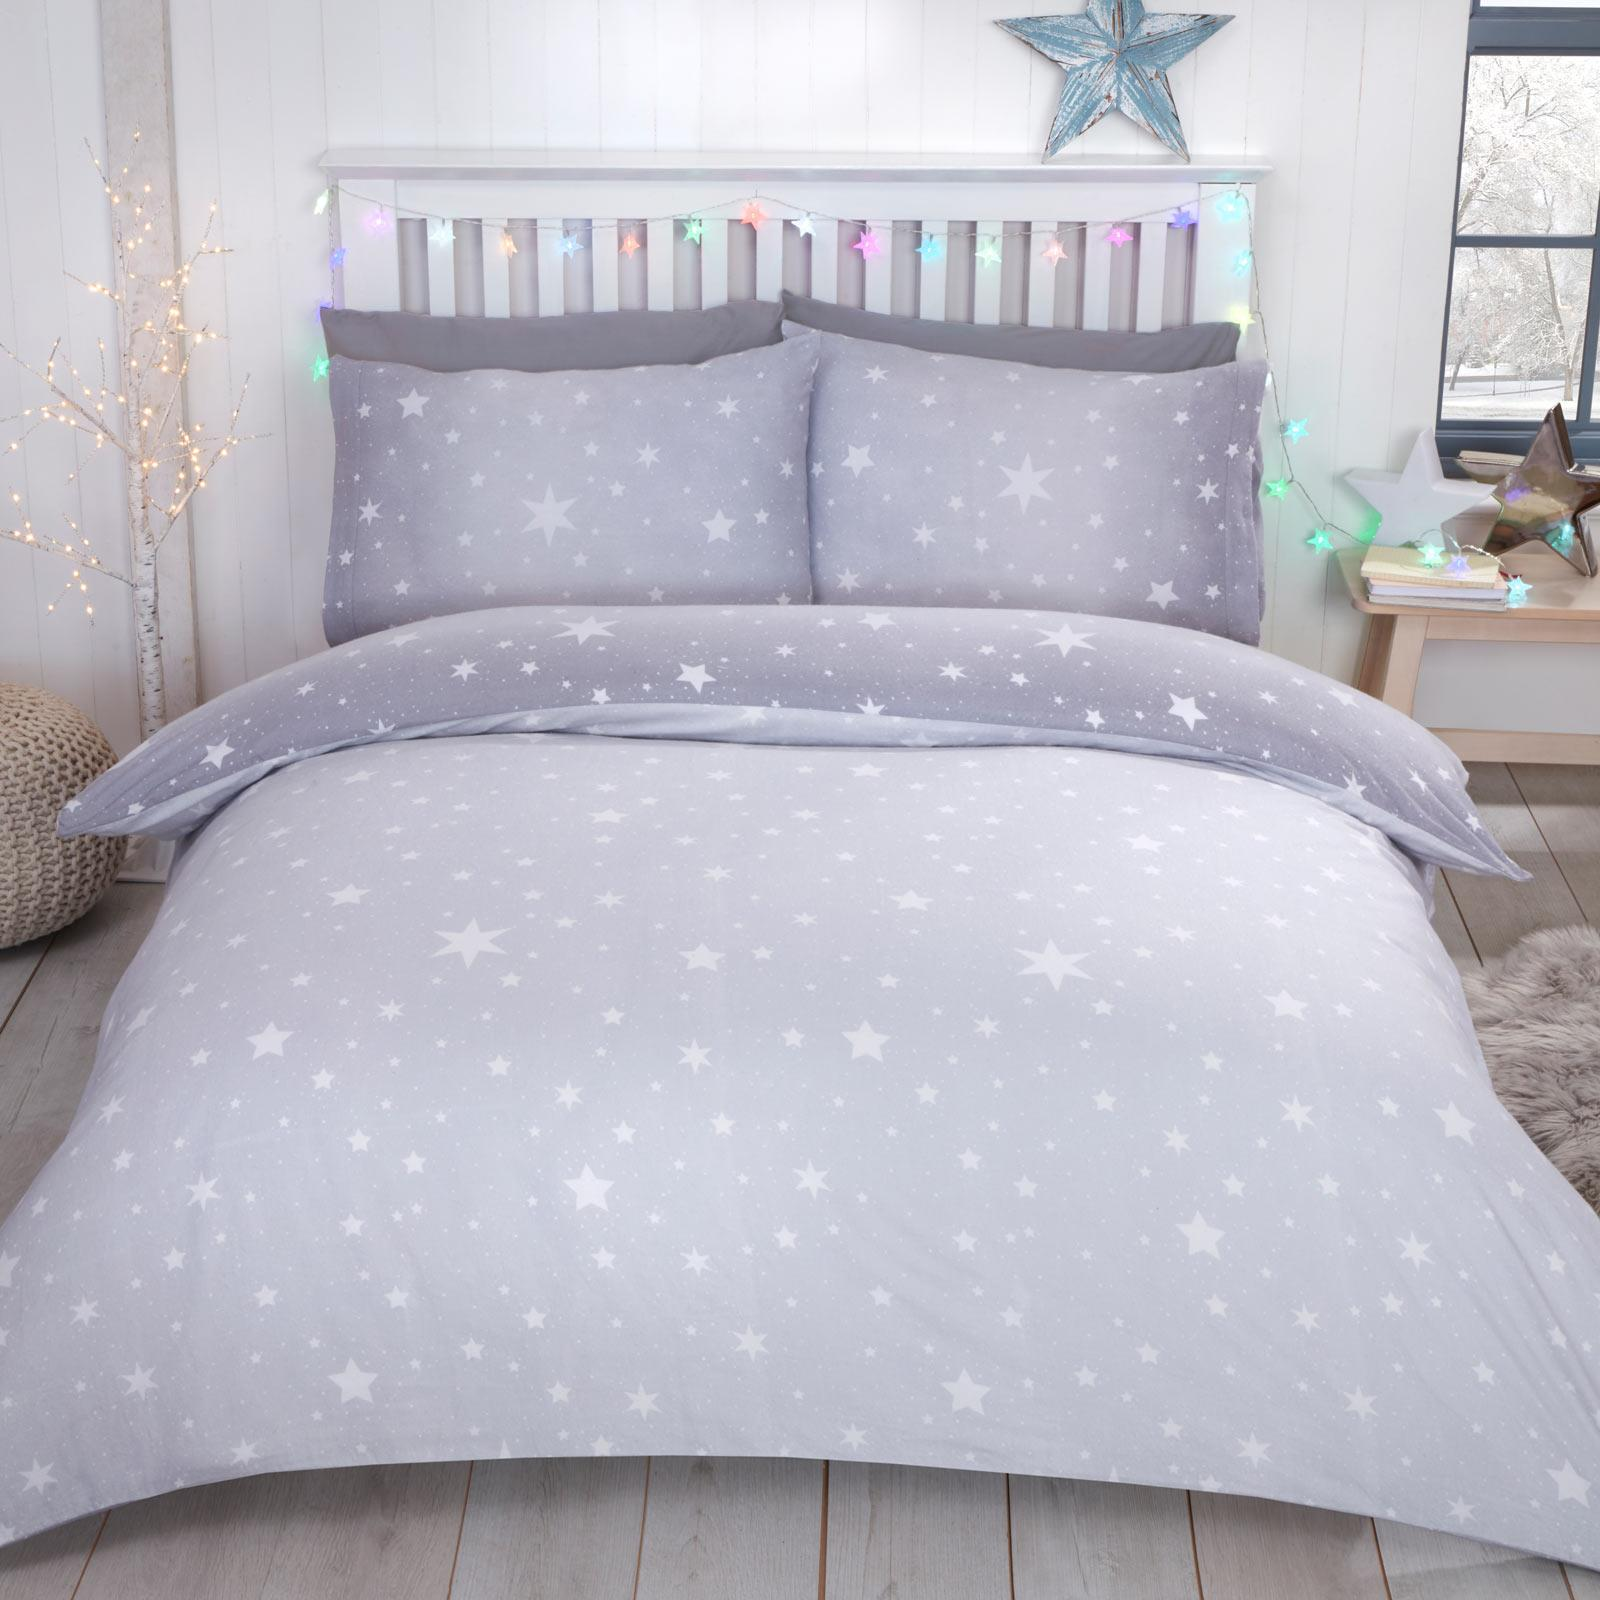 Double, Grey Winter Stag Grey Flannelette 100/% Brushed Cotton Duvet Quilt Cover Bedding Set